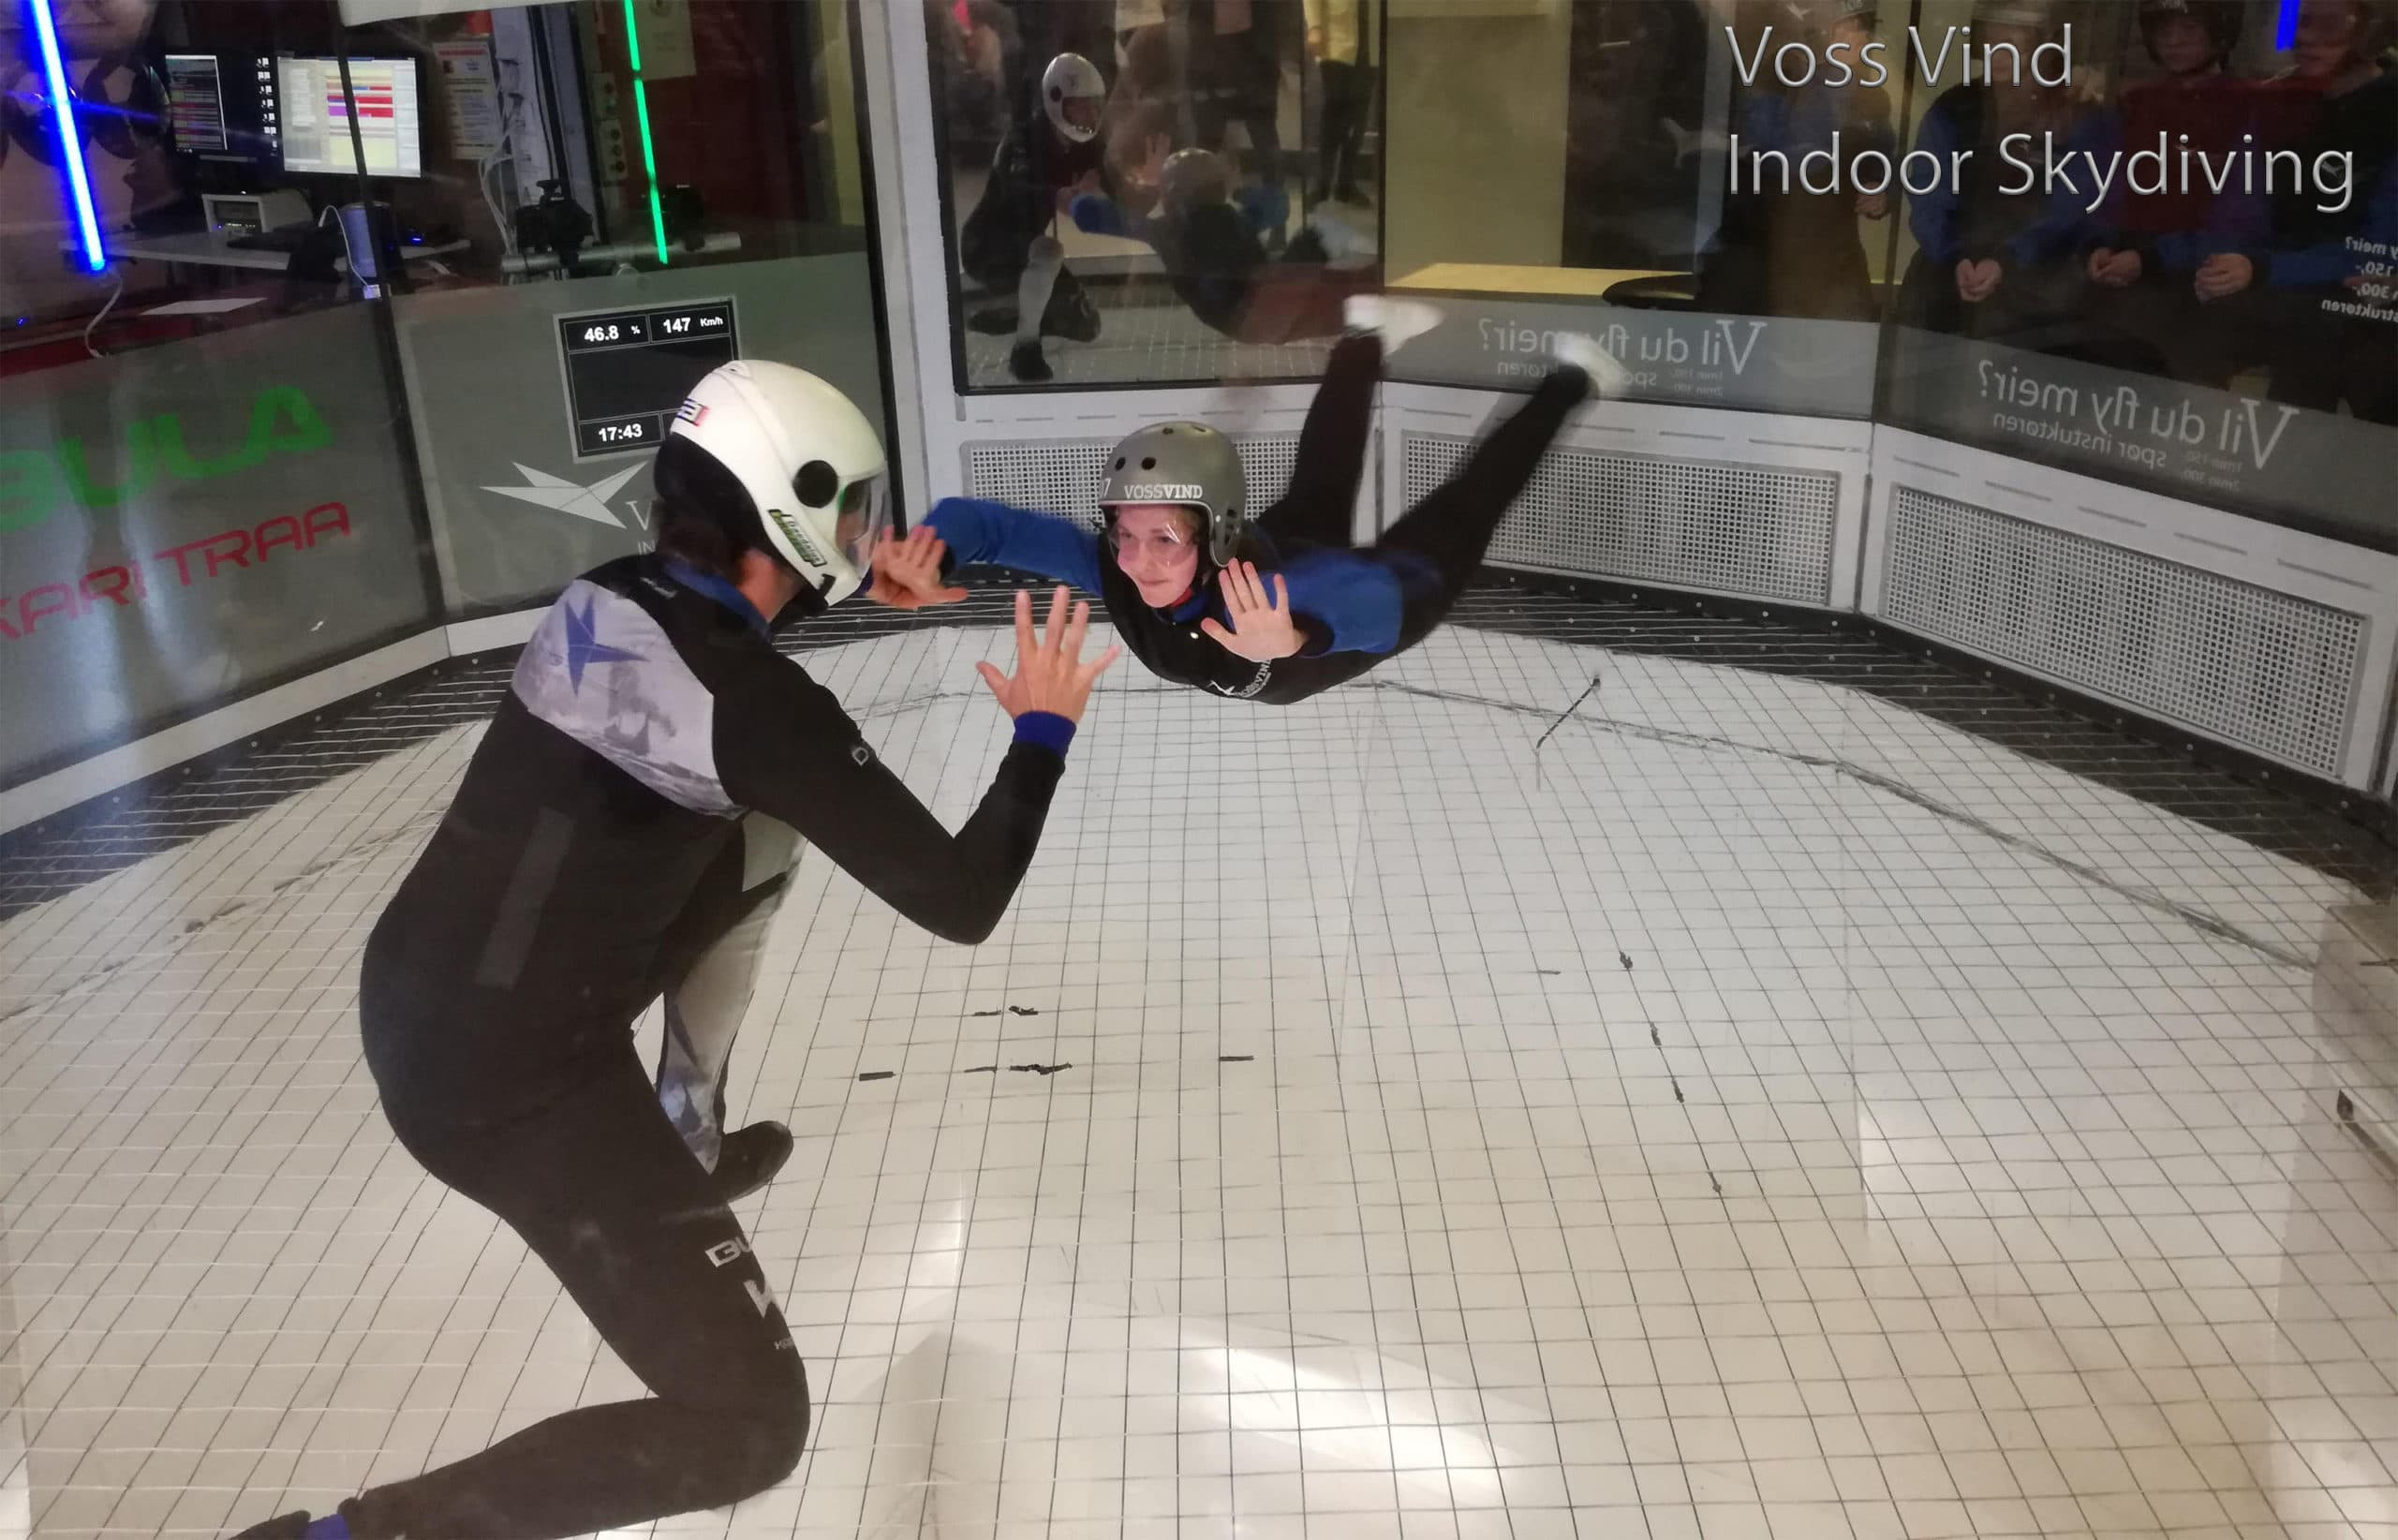 Indoor skydiving centre